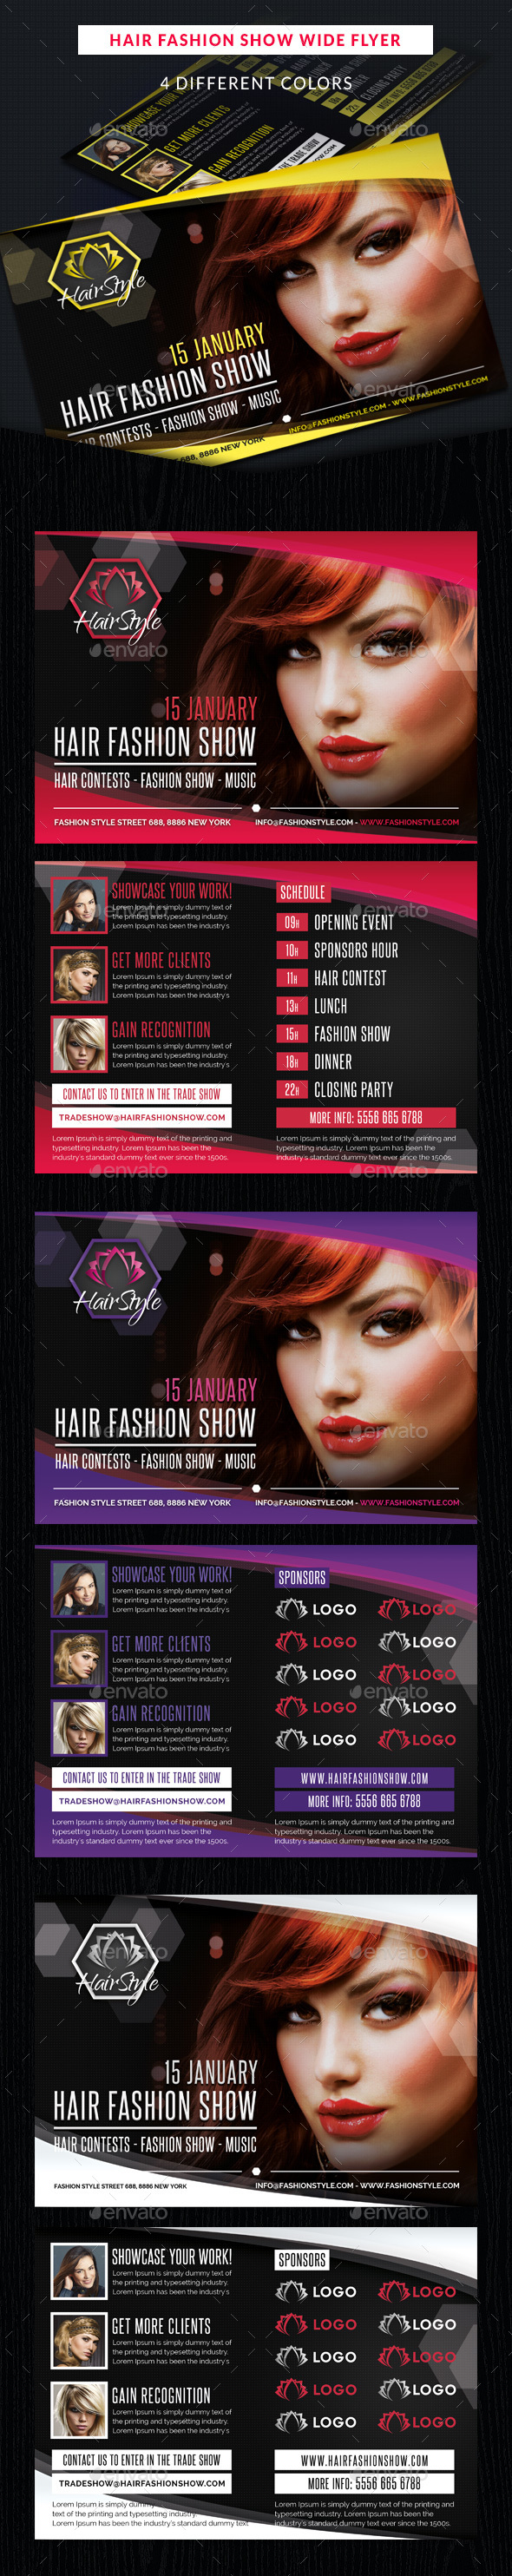 Hair Fashion Show Promotion Wide Flyer - Commerce Flyers